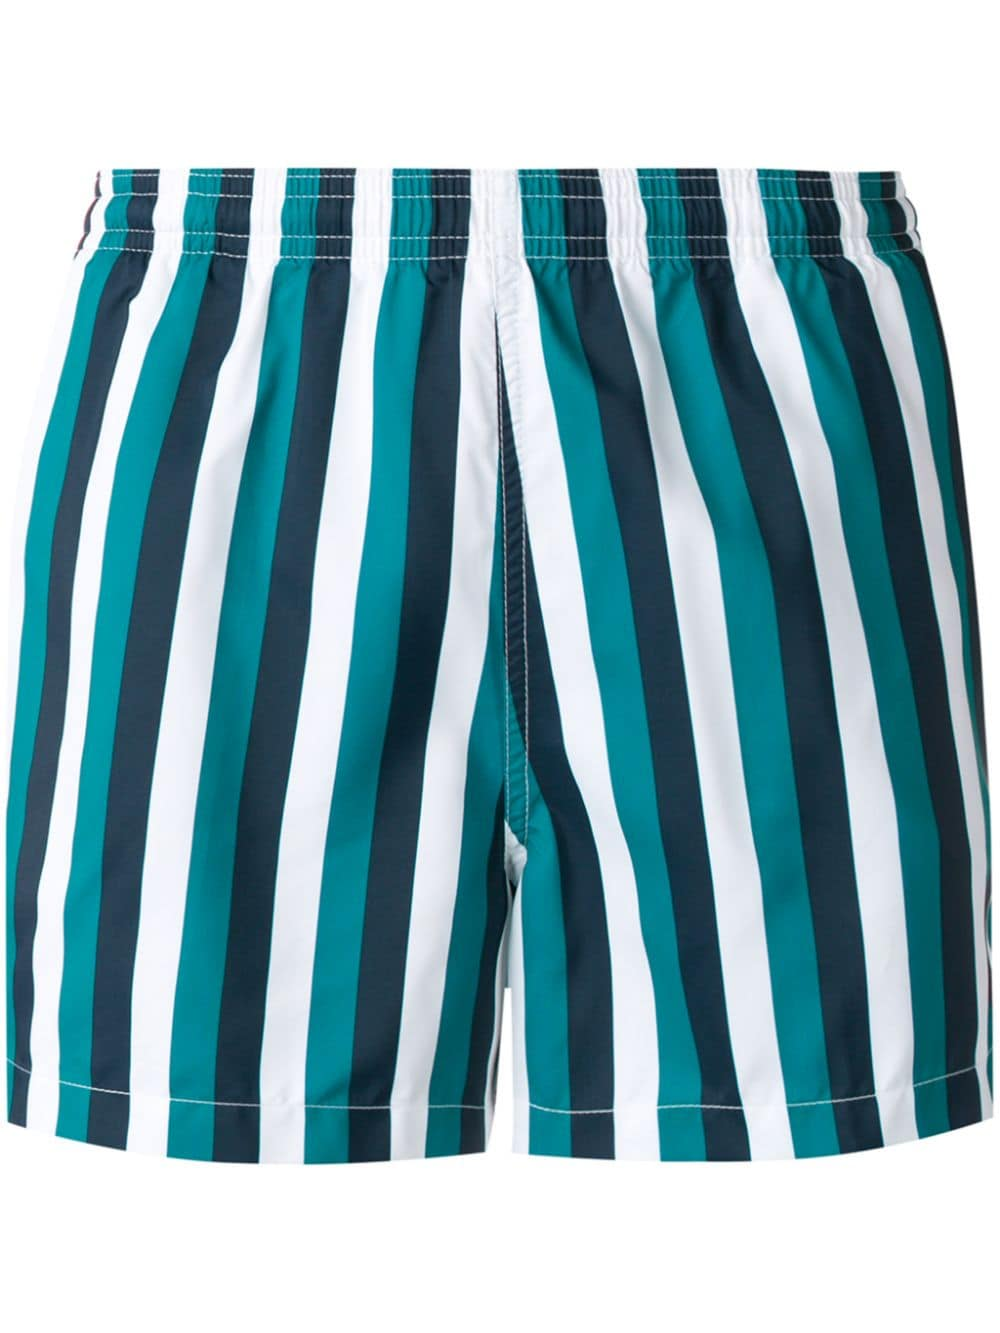 dba72de90 Ron Dorff striped swim shorts - Blue in 2019 | Products | Swim ...